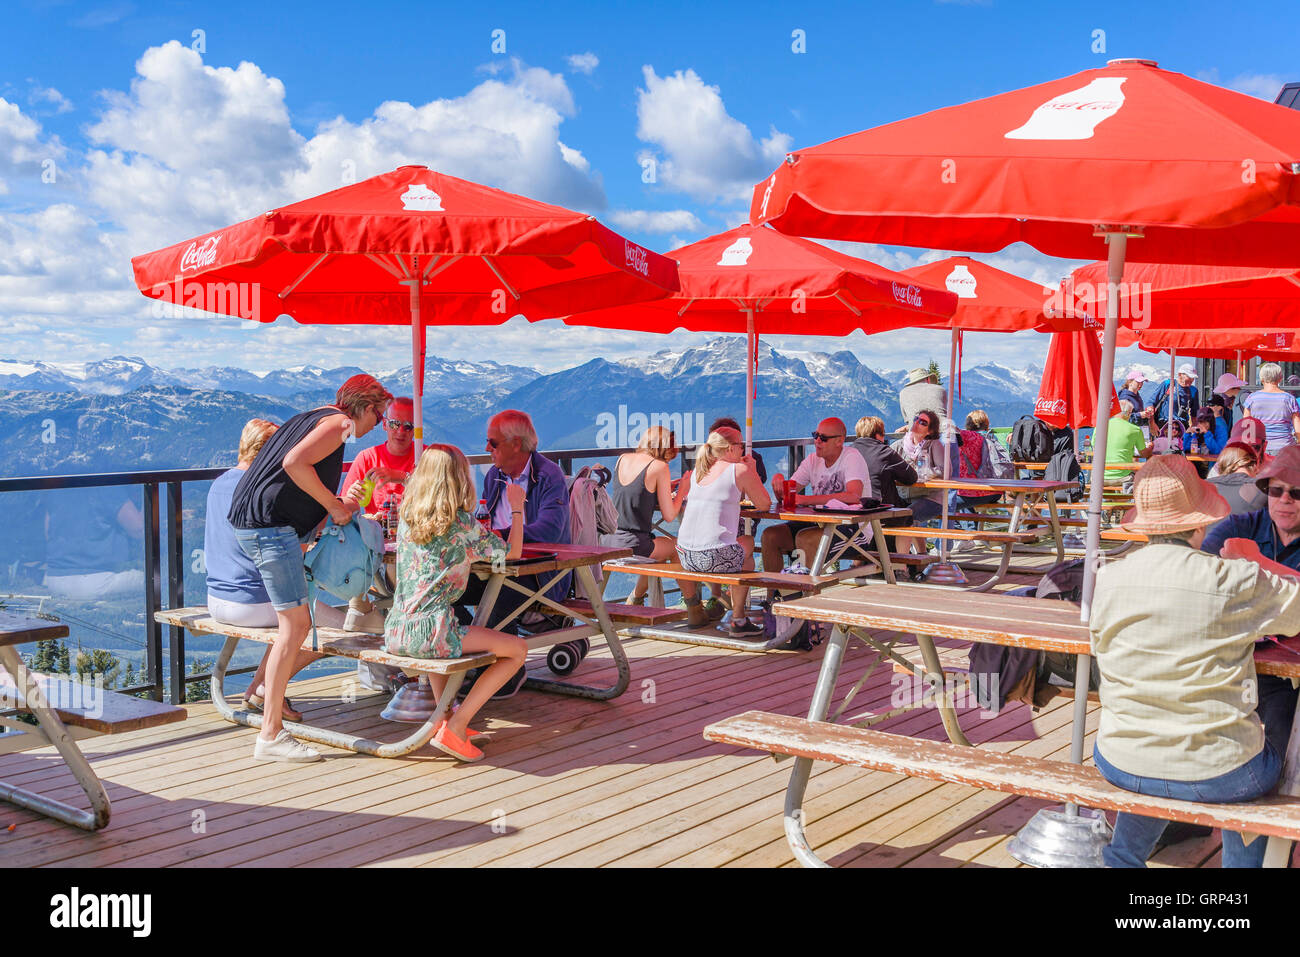 Restaurant patio, Blackcomb Mountain, Whistler, British Columbia, Canada. - Stock Image